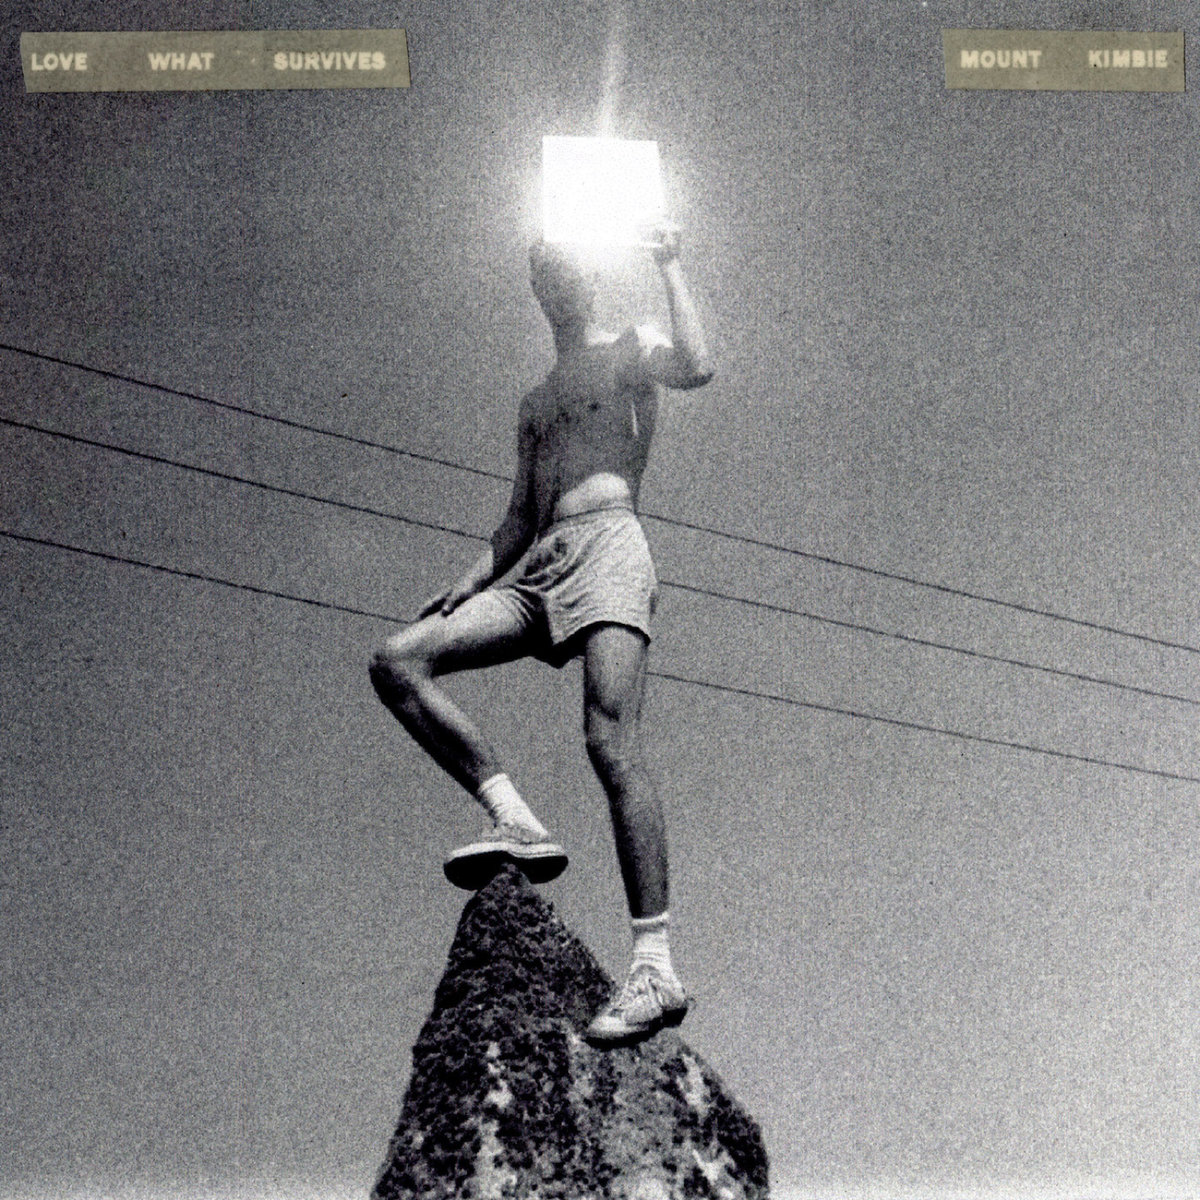 mount kimbie love what survives